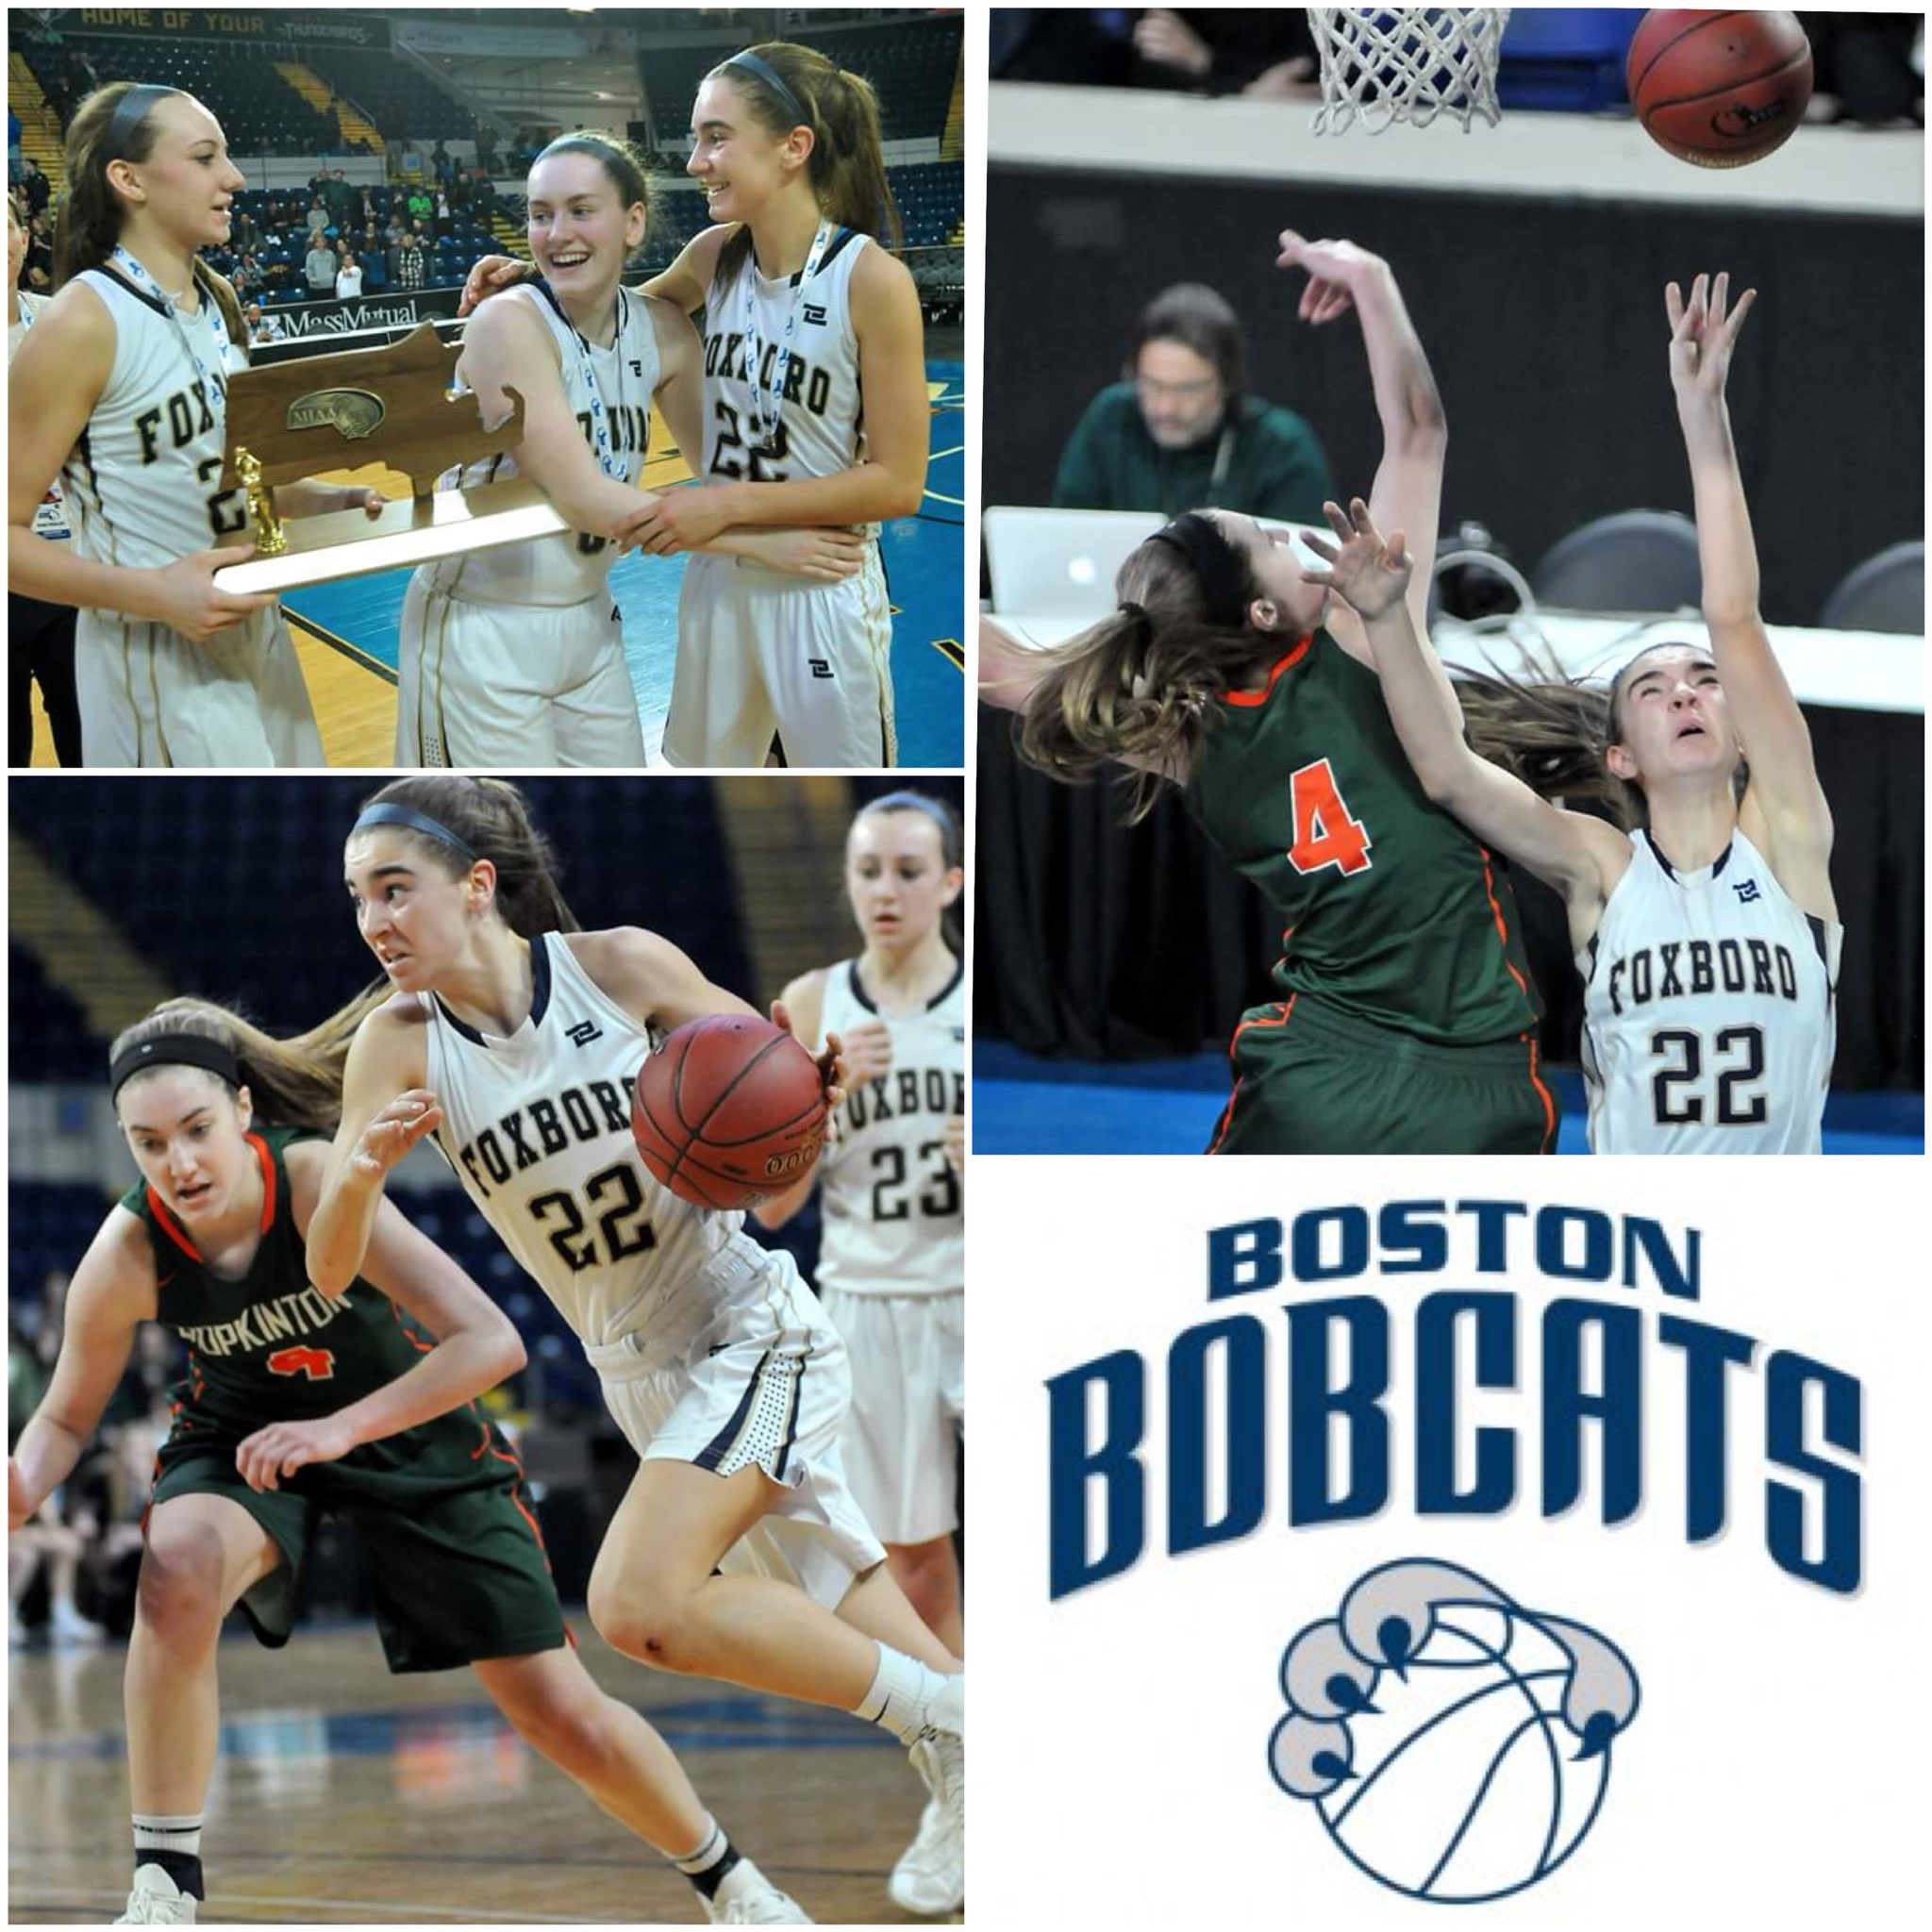 Congratulations to Abby Hassman of Foxboro on winning the Div 2 State Championship